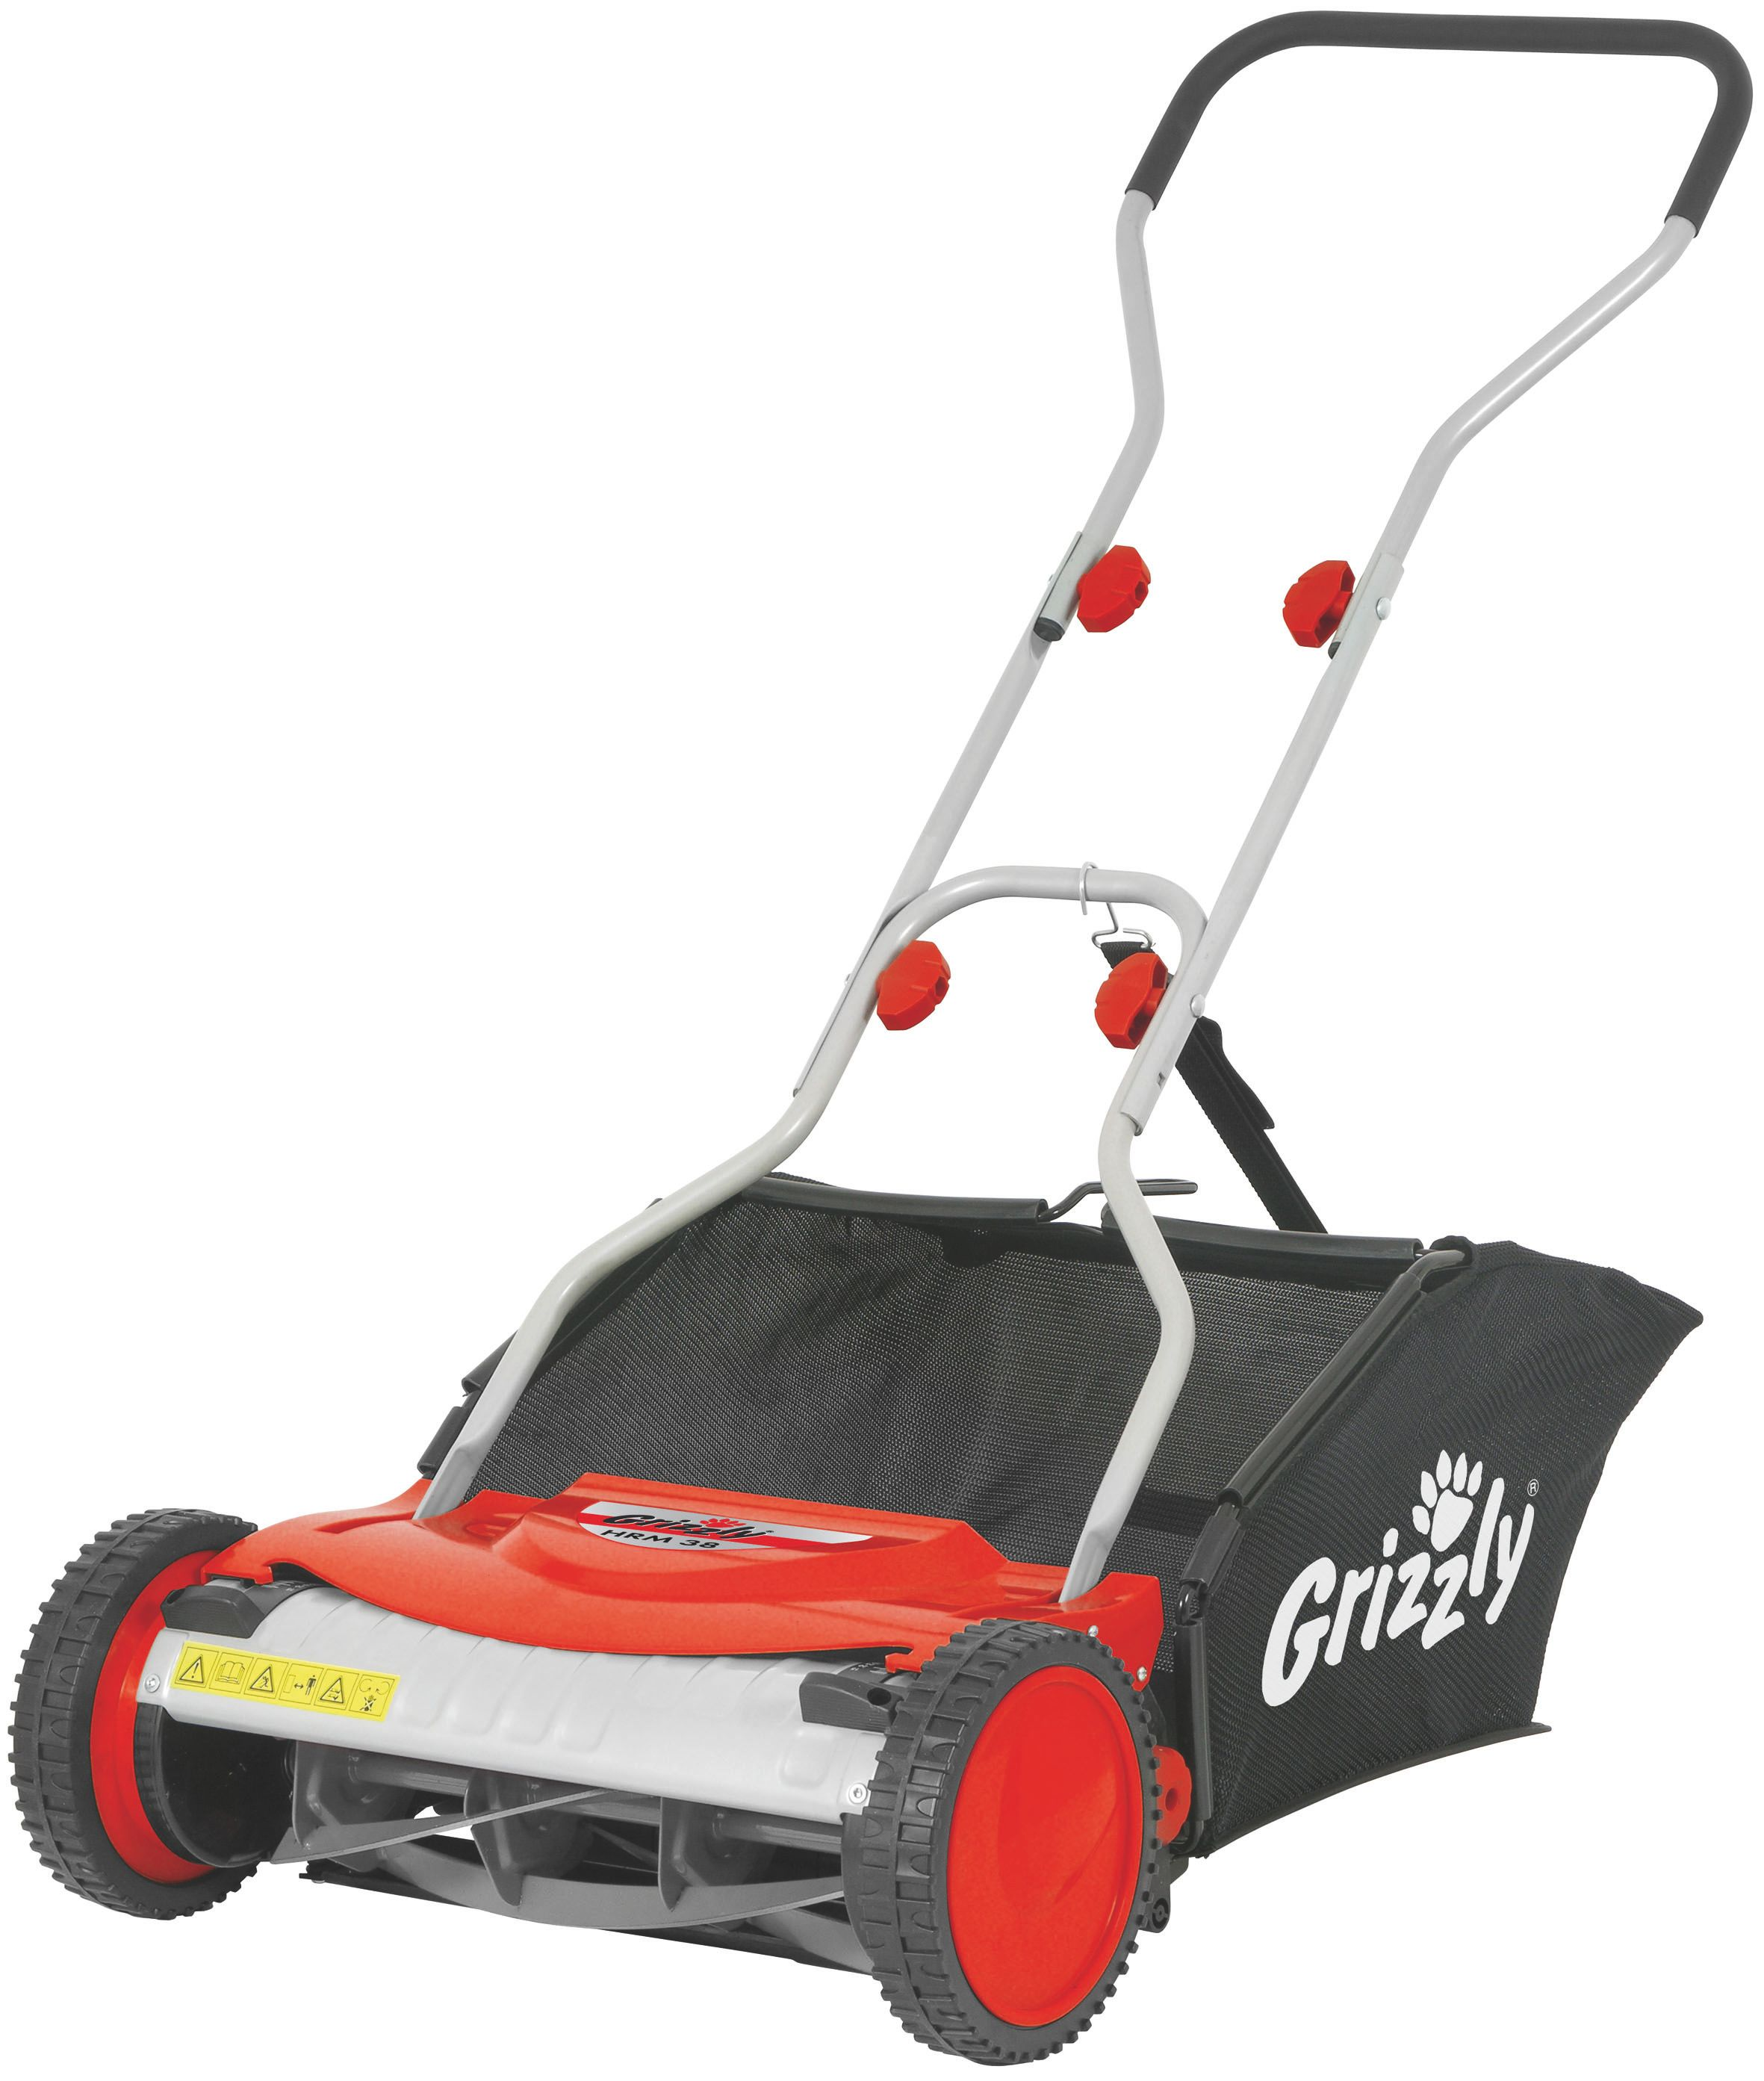 Image of Grizzly Grizzly manual lawn mower 38cm cut